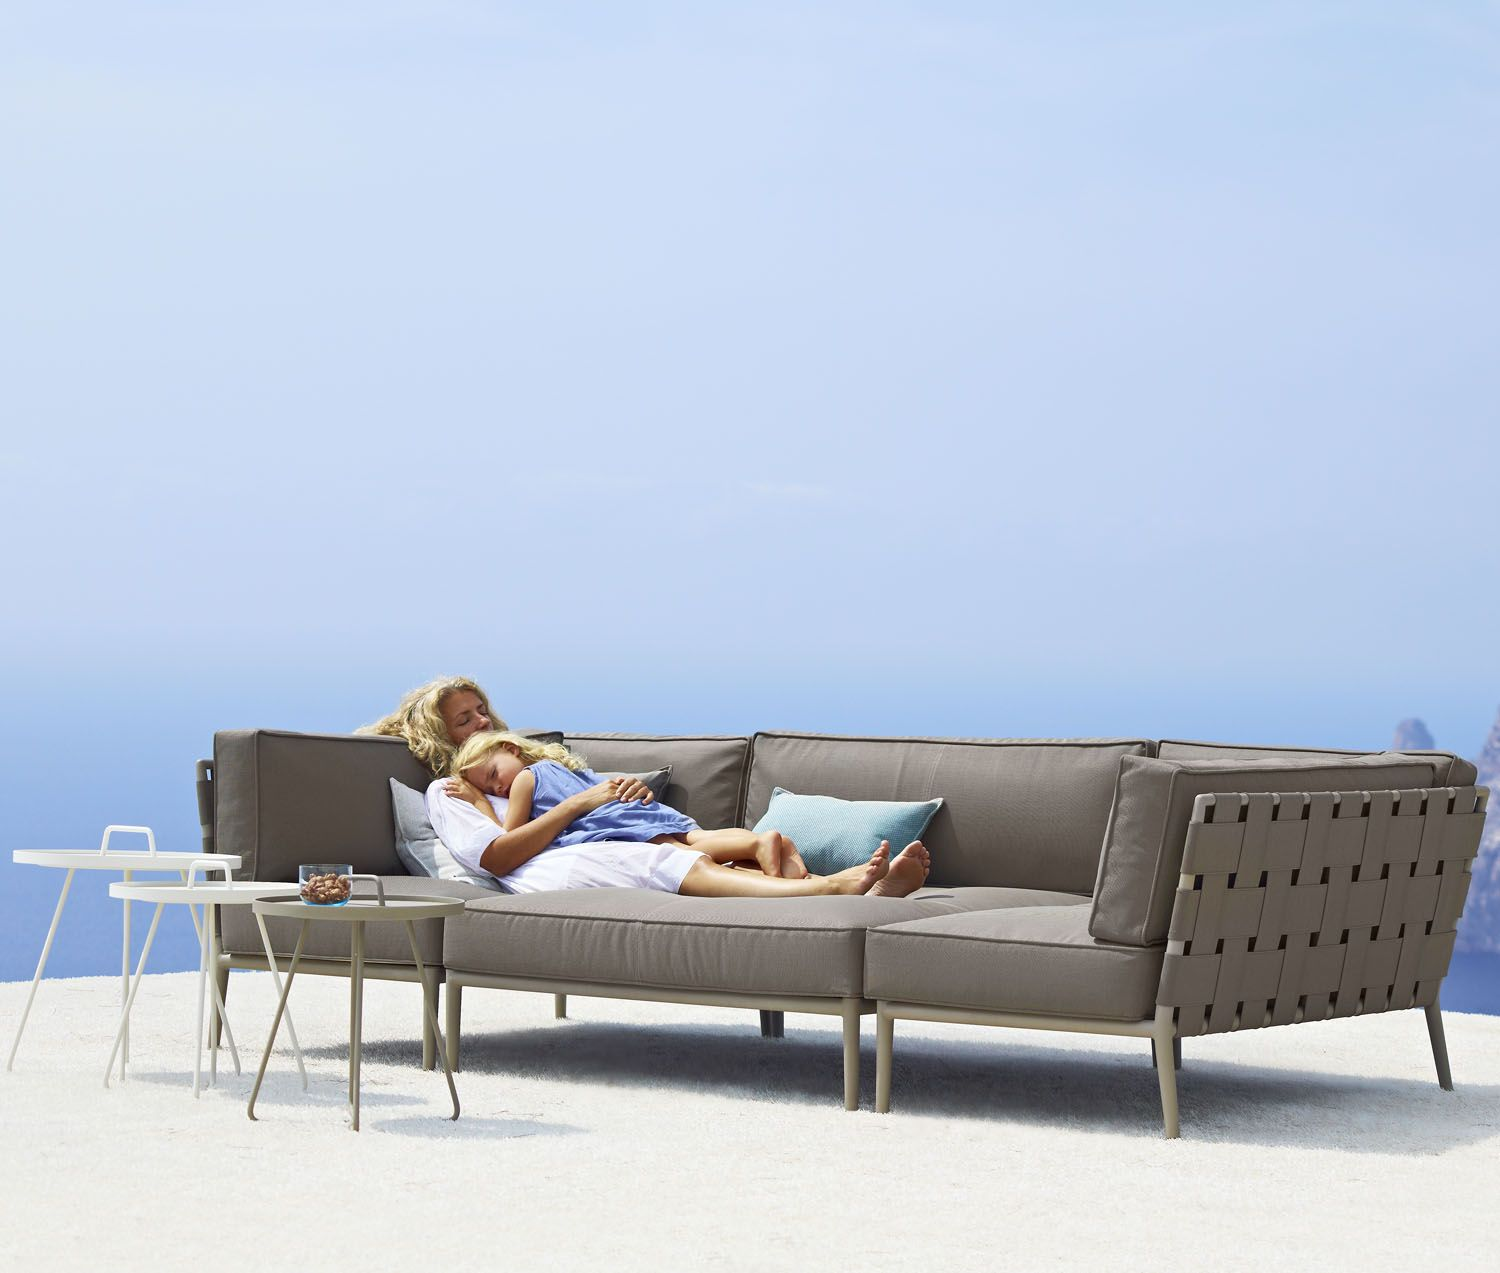 Tolle Neoteric Ideas Lounge Sessel Outdoor Galerie - Heimat Ideen ...